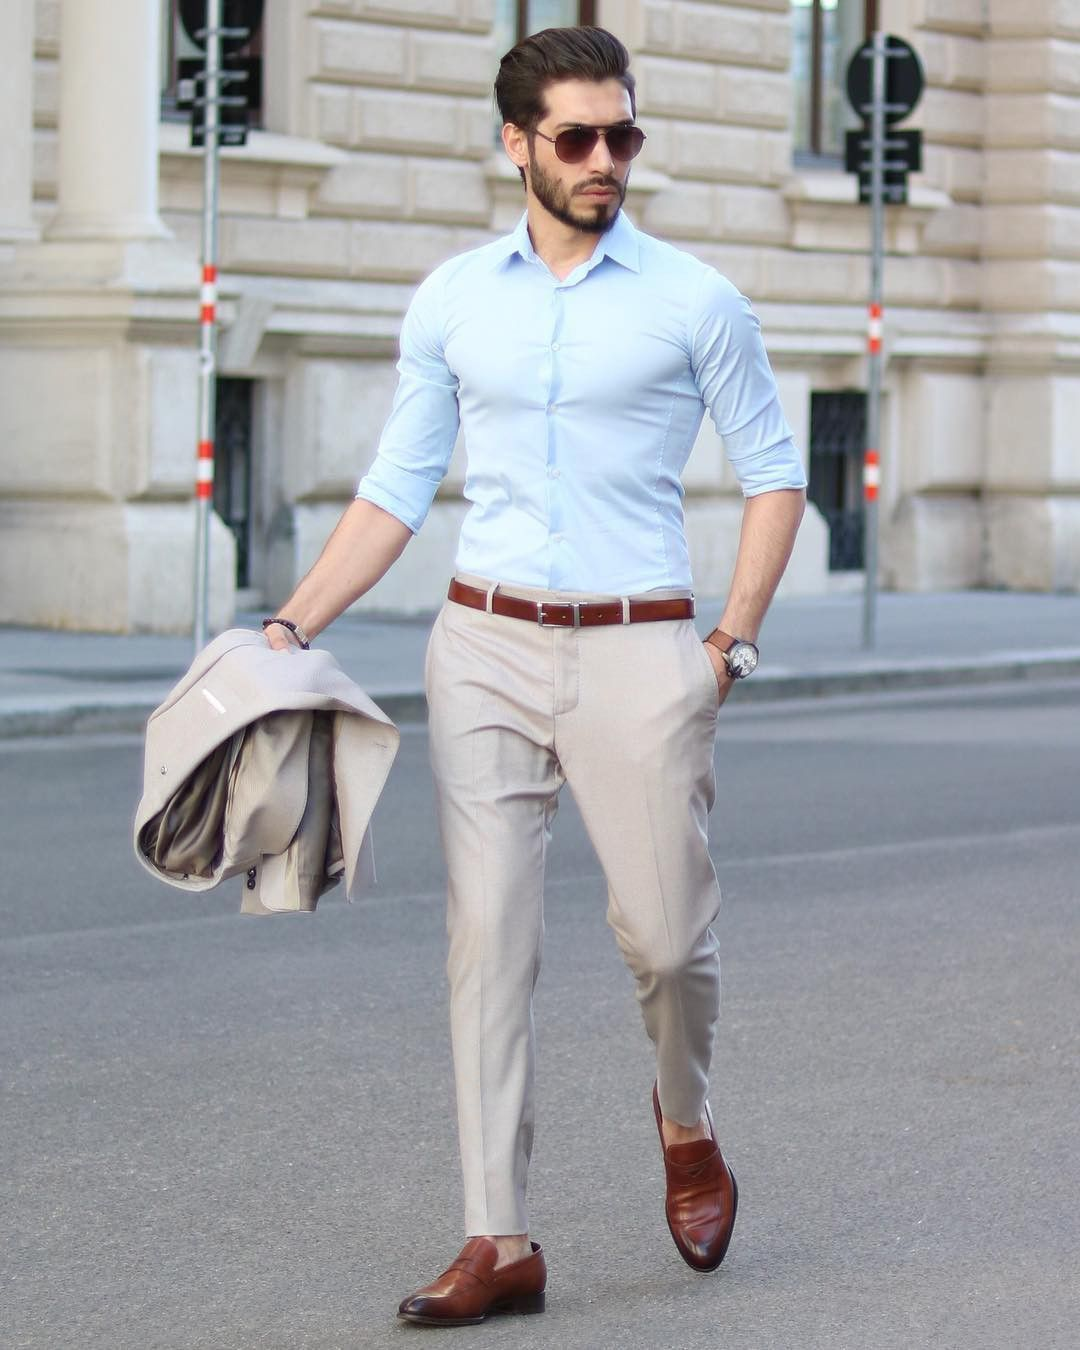 Wedding White Or Blue Shirt: Man Wearing Tan Colored #suit With Blue Shirt And Brown